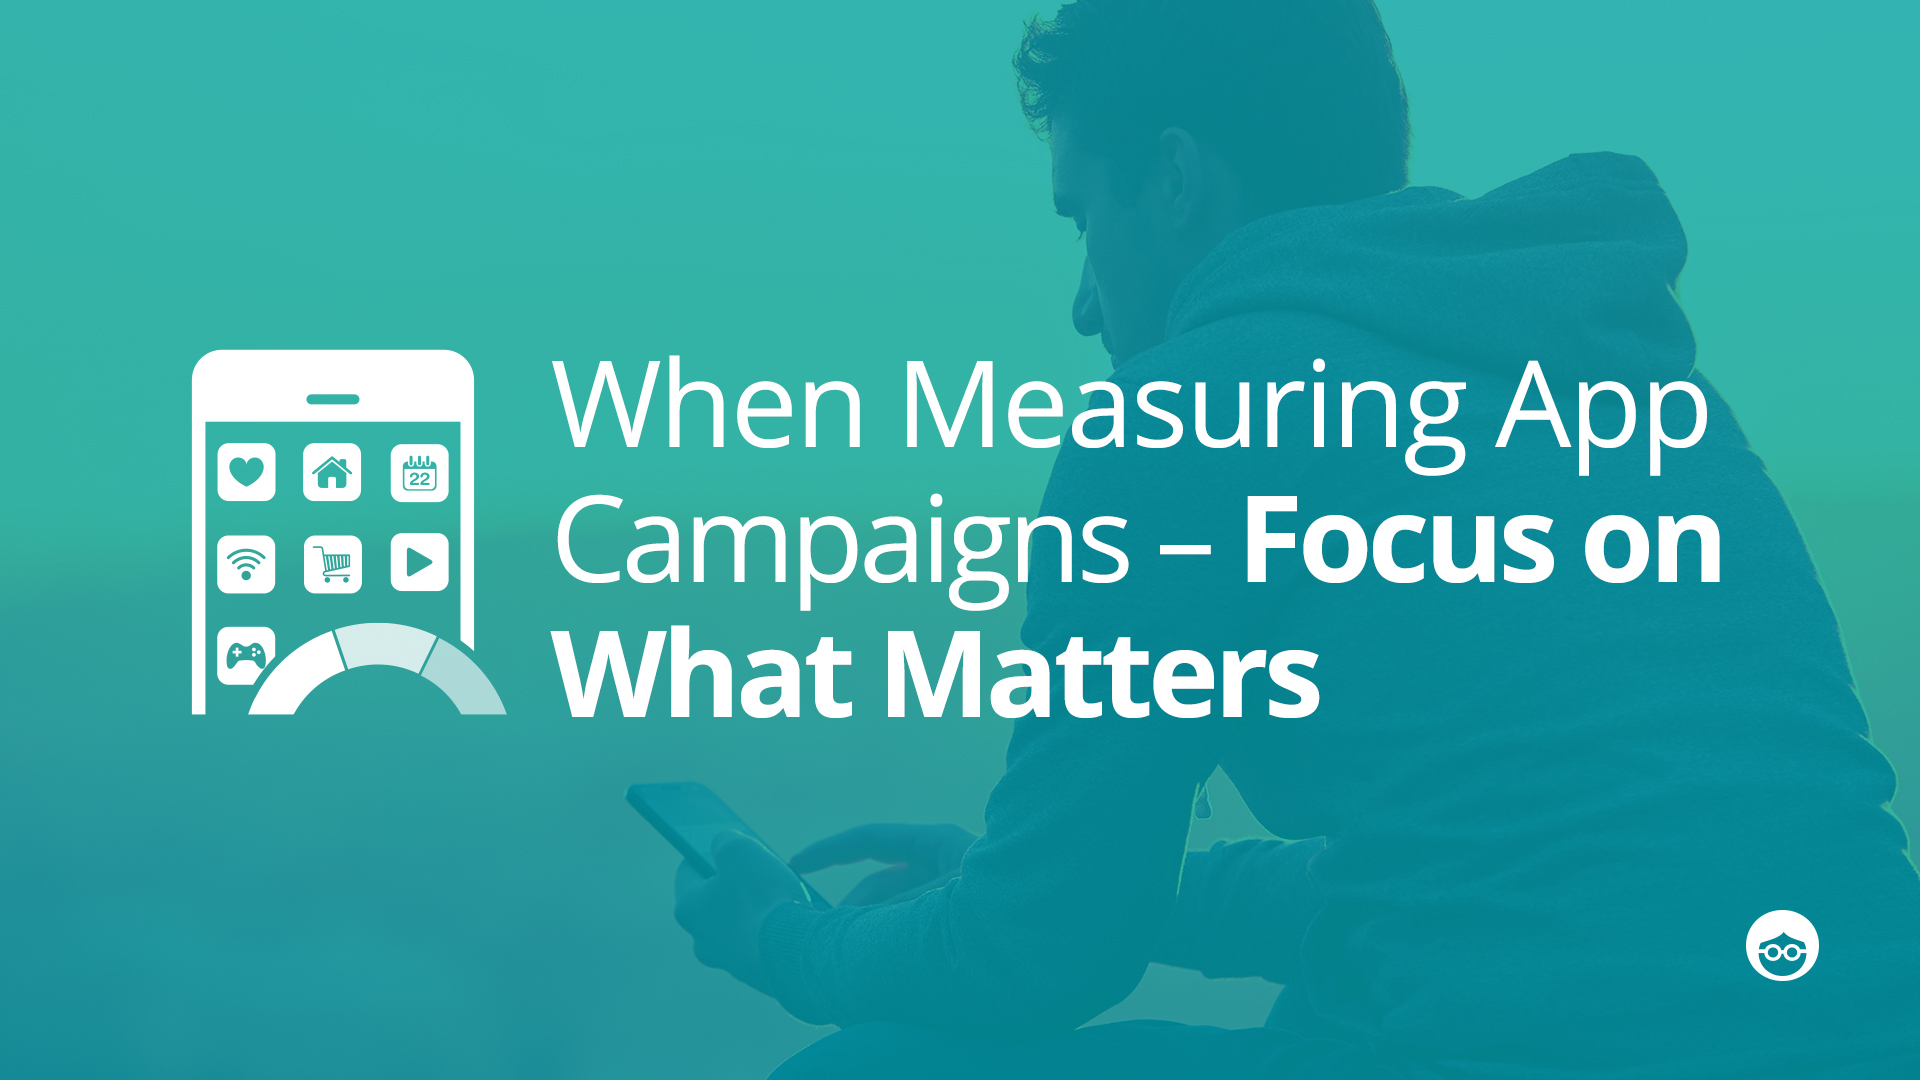 5 Mistakes to Watch Out For When Measuring App Campaigns